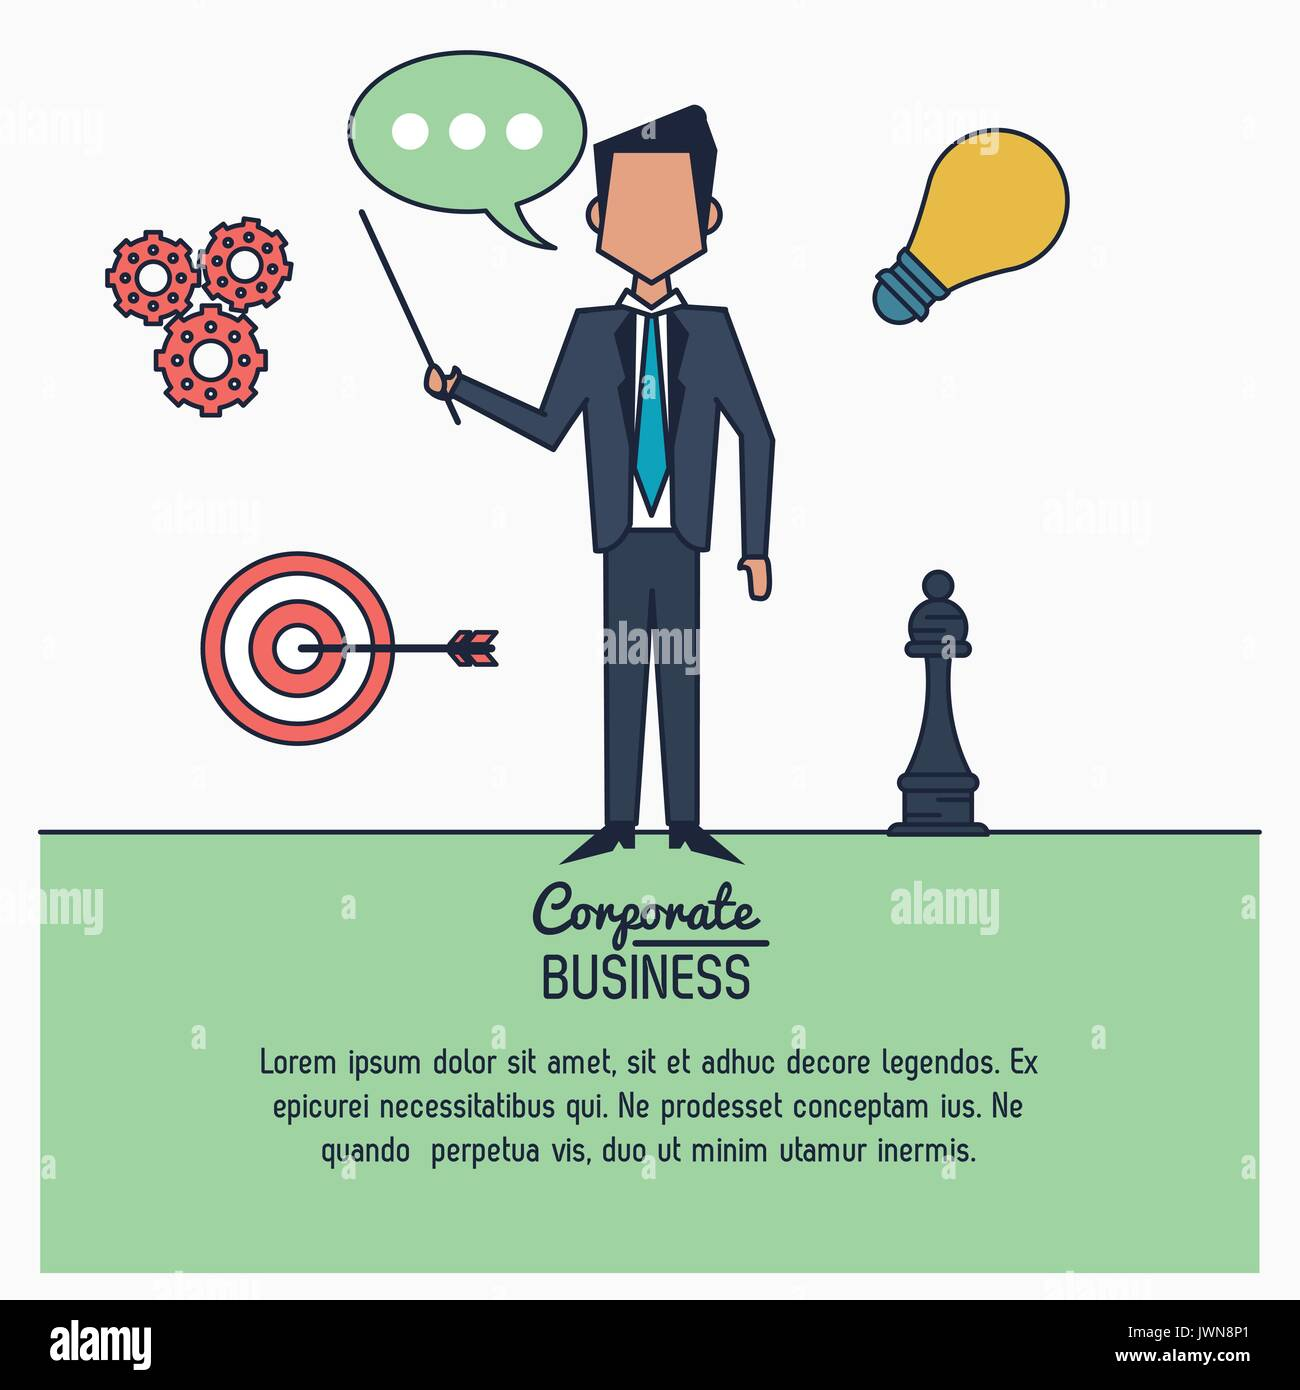 Infographie colorée de corporate business avec exposant businessman standing Photo Stock